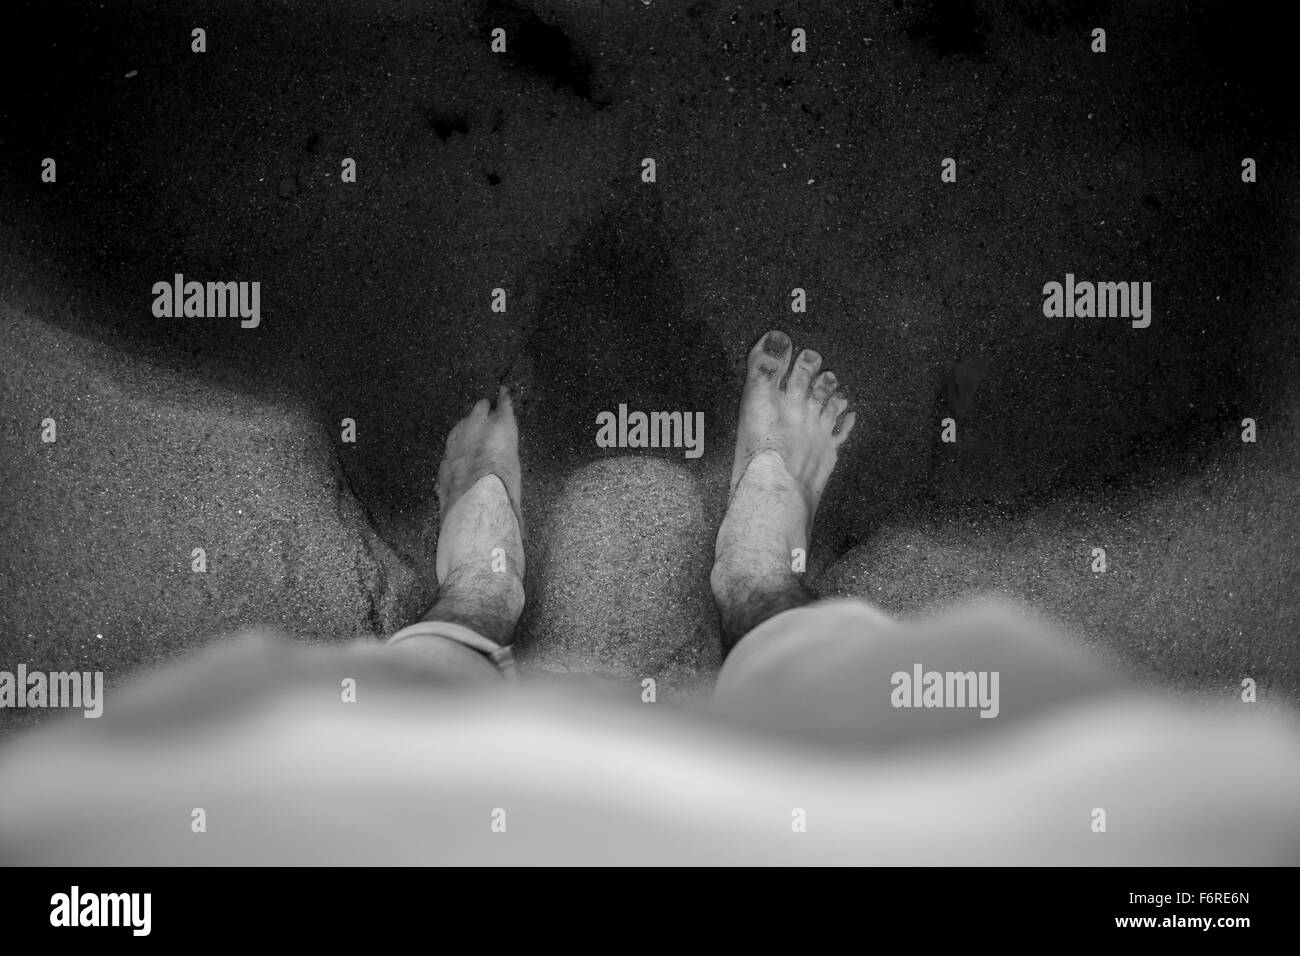 feet in water black and white - Stock Image